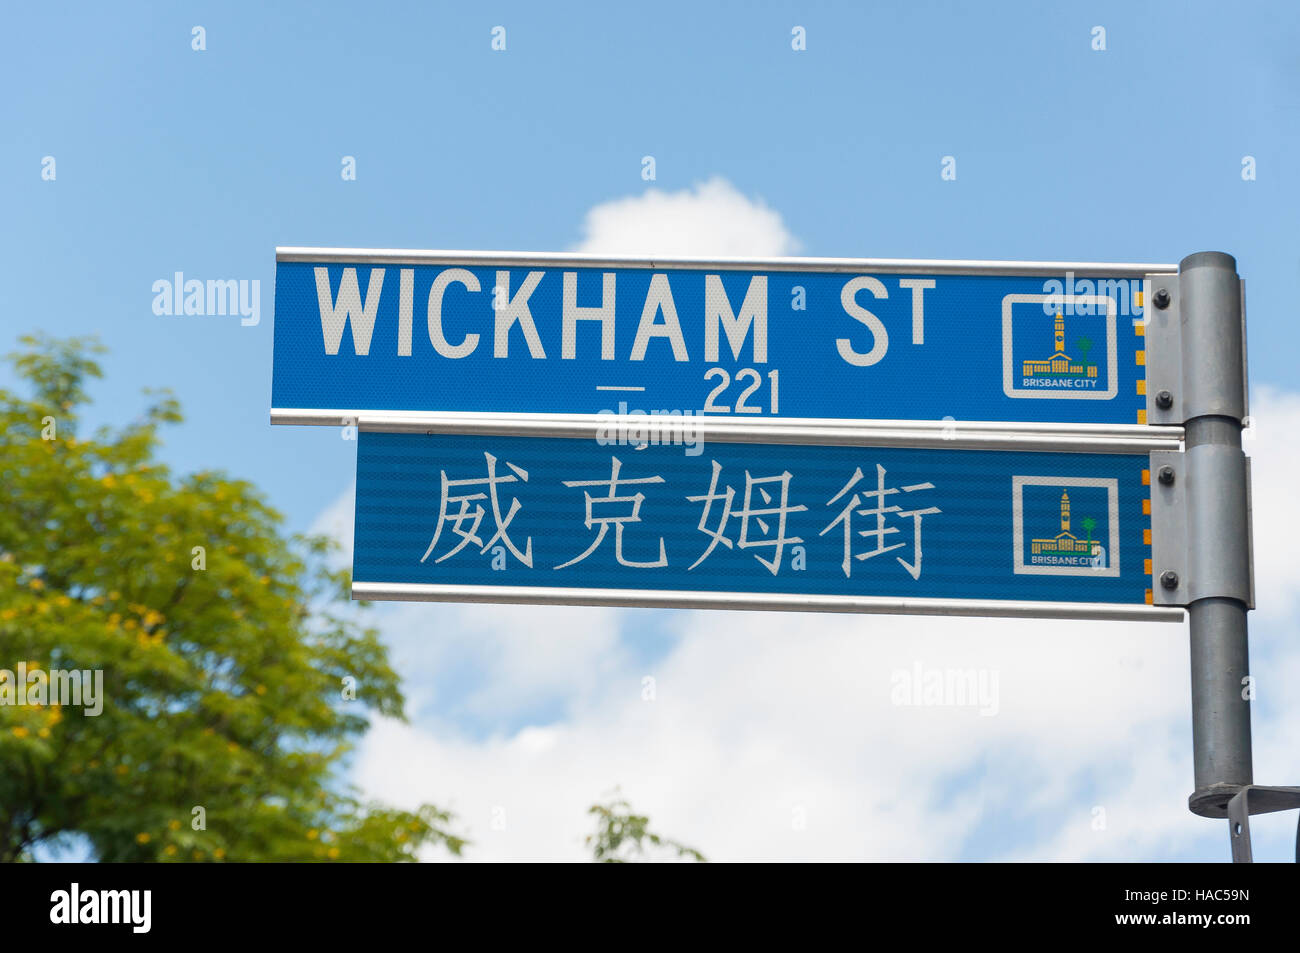 Chinese street sign in Chinatown, Wickham Street, Fortitude Valley, Brisbane, Queensland, Australia - Stock Image